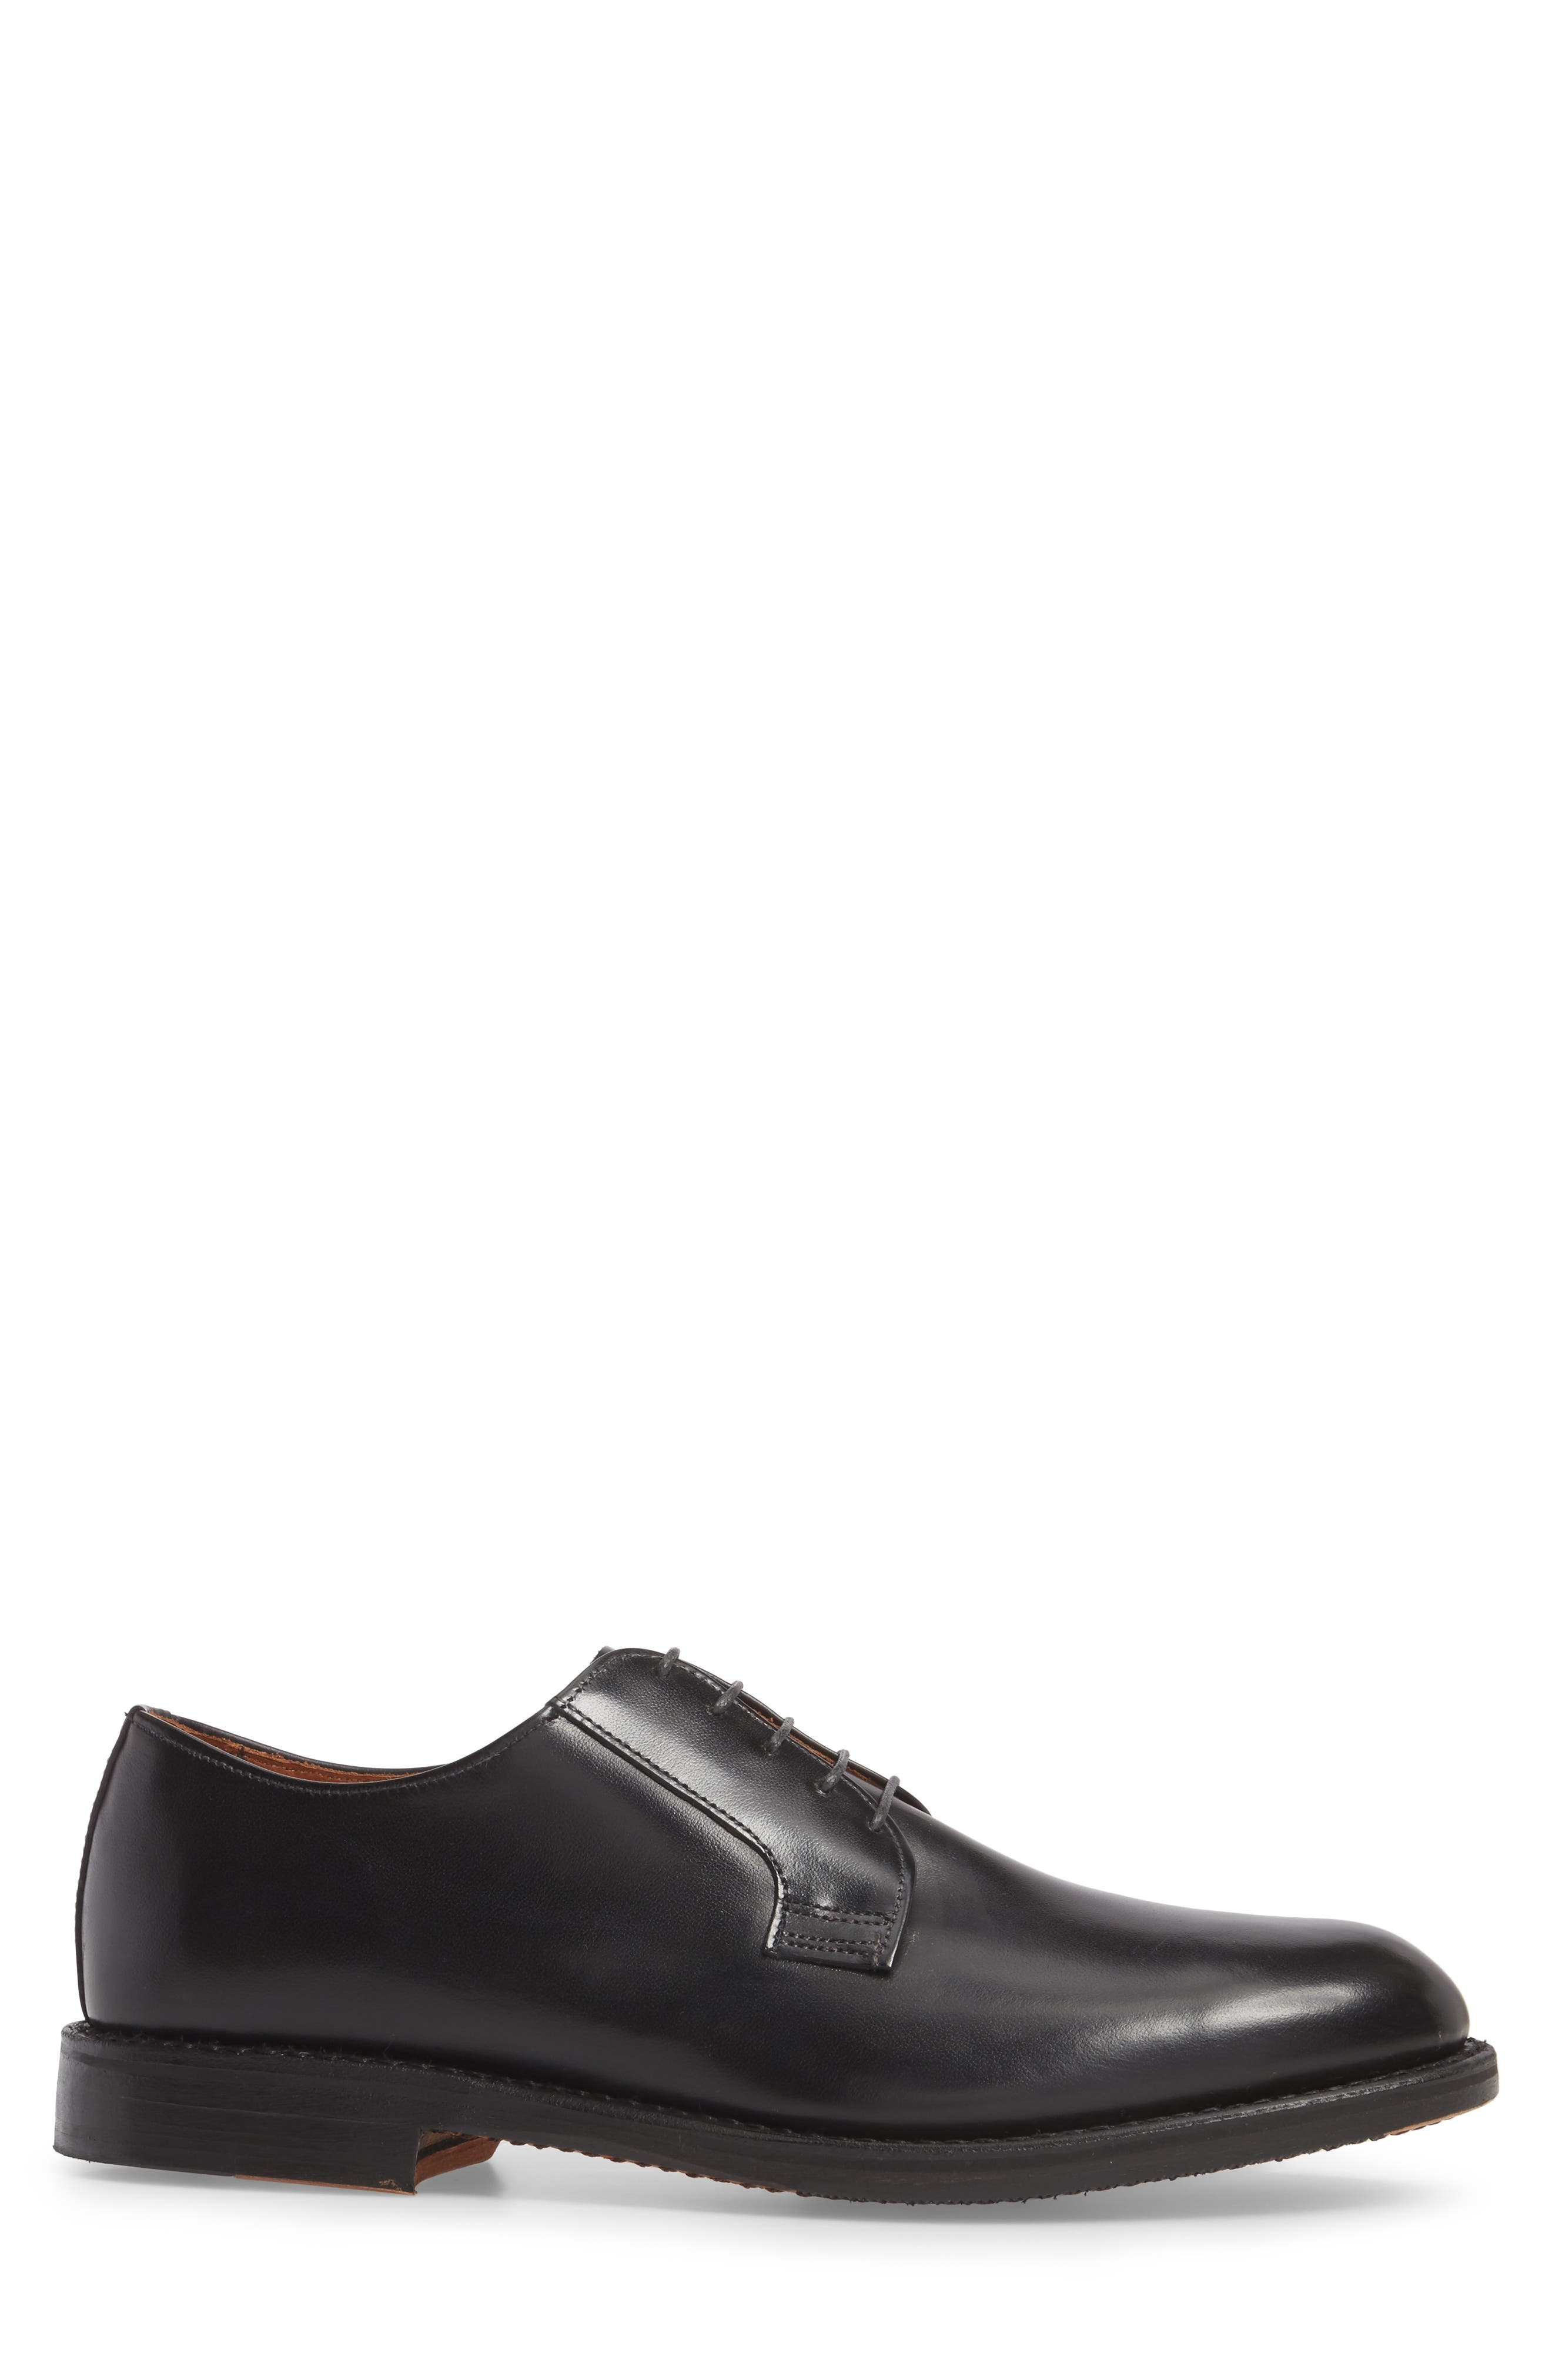 Whitney Plain Toe Derby,                             Alternate thumbnail 3, color,                             BLACK LEATHER